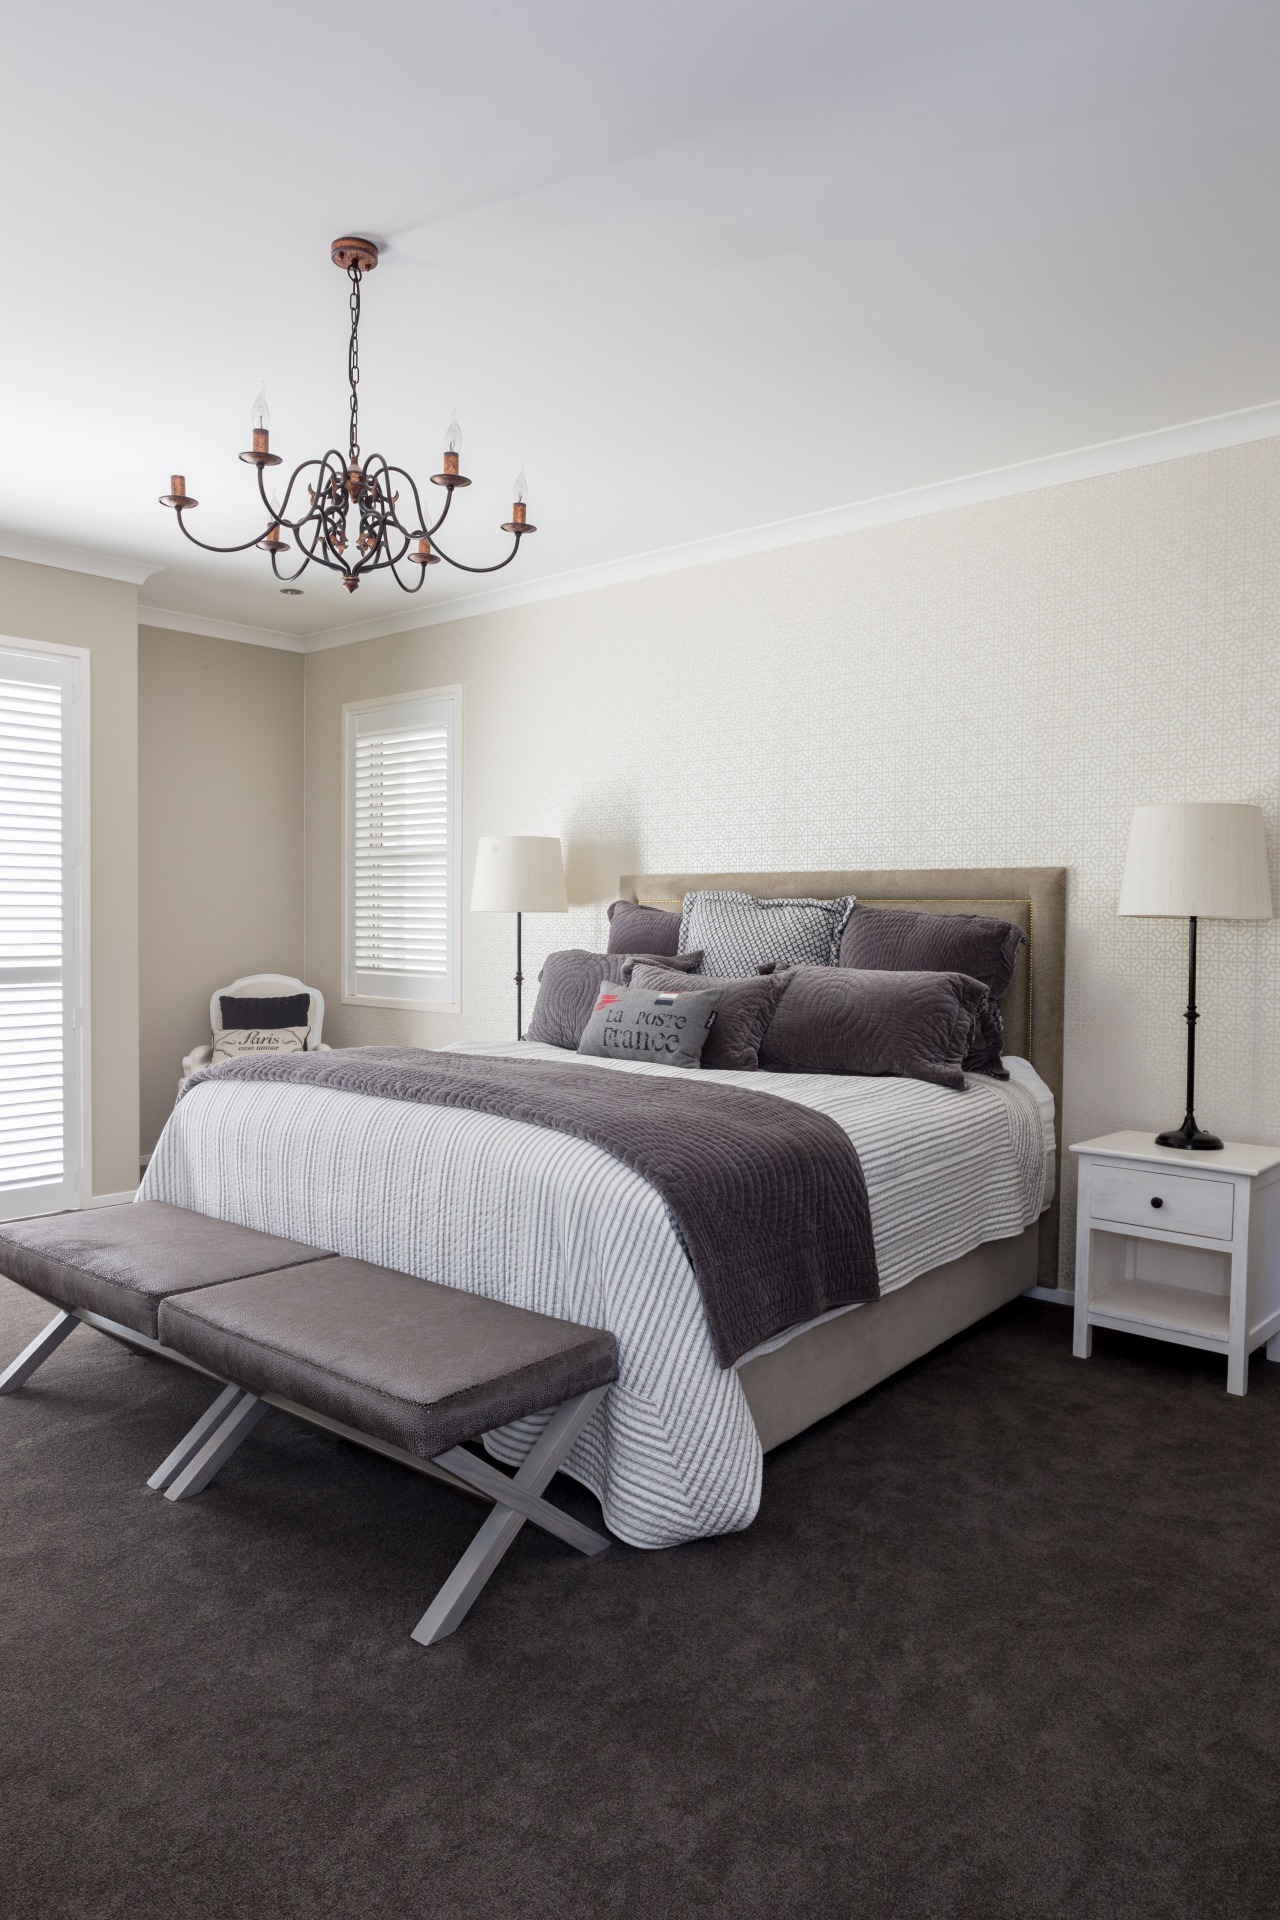 In this Yellowfox project, the master bed-room has bed, bed frame, bedroom, ceiling, floor, flooring, furniture, home, interior design, room, wall, wood, gray, black